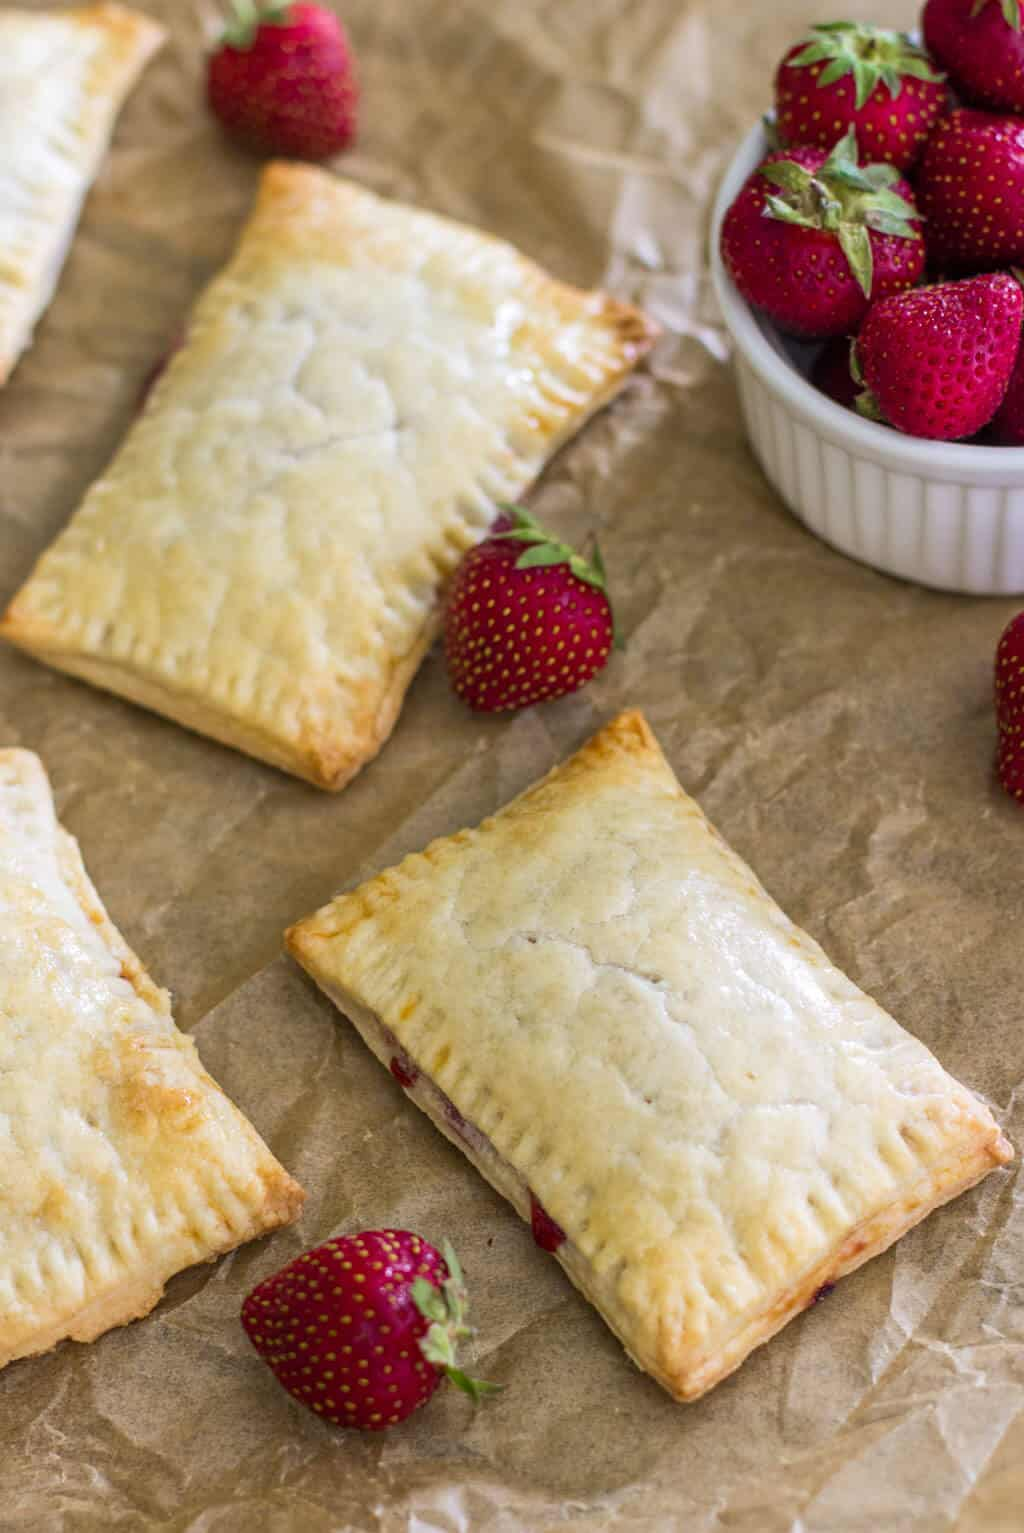 Strawberry Pop Tarts before being iced